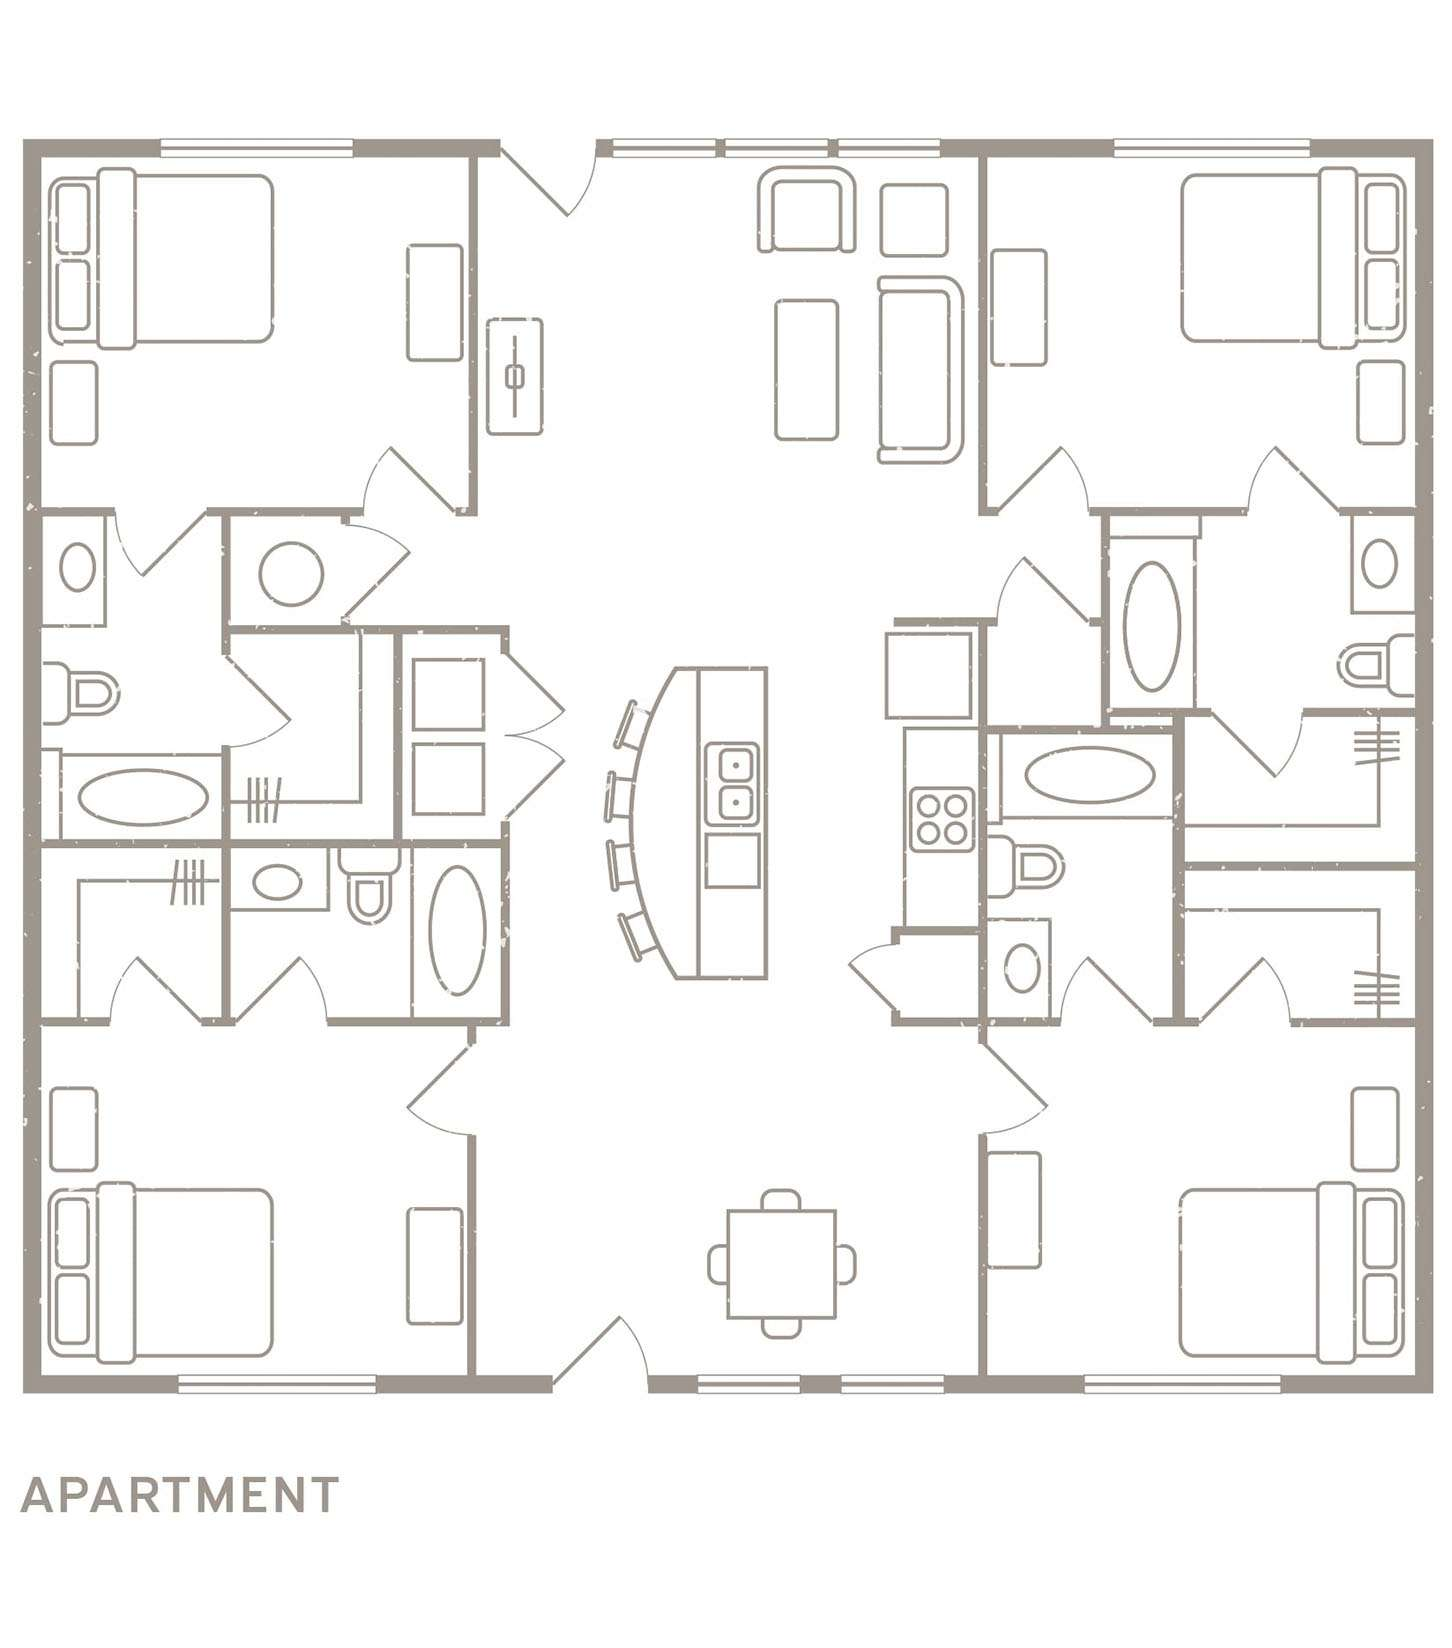 3 To 4 Bedroom Apartments Near Me: 4,3,2 Bedroom Apartment Floorplans